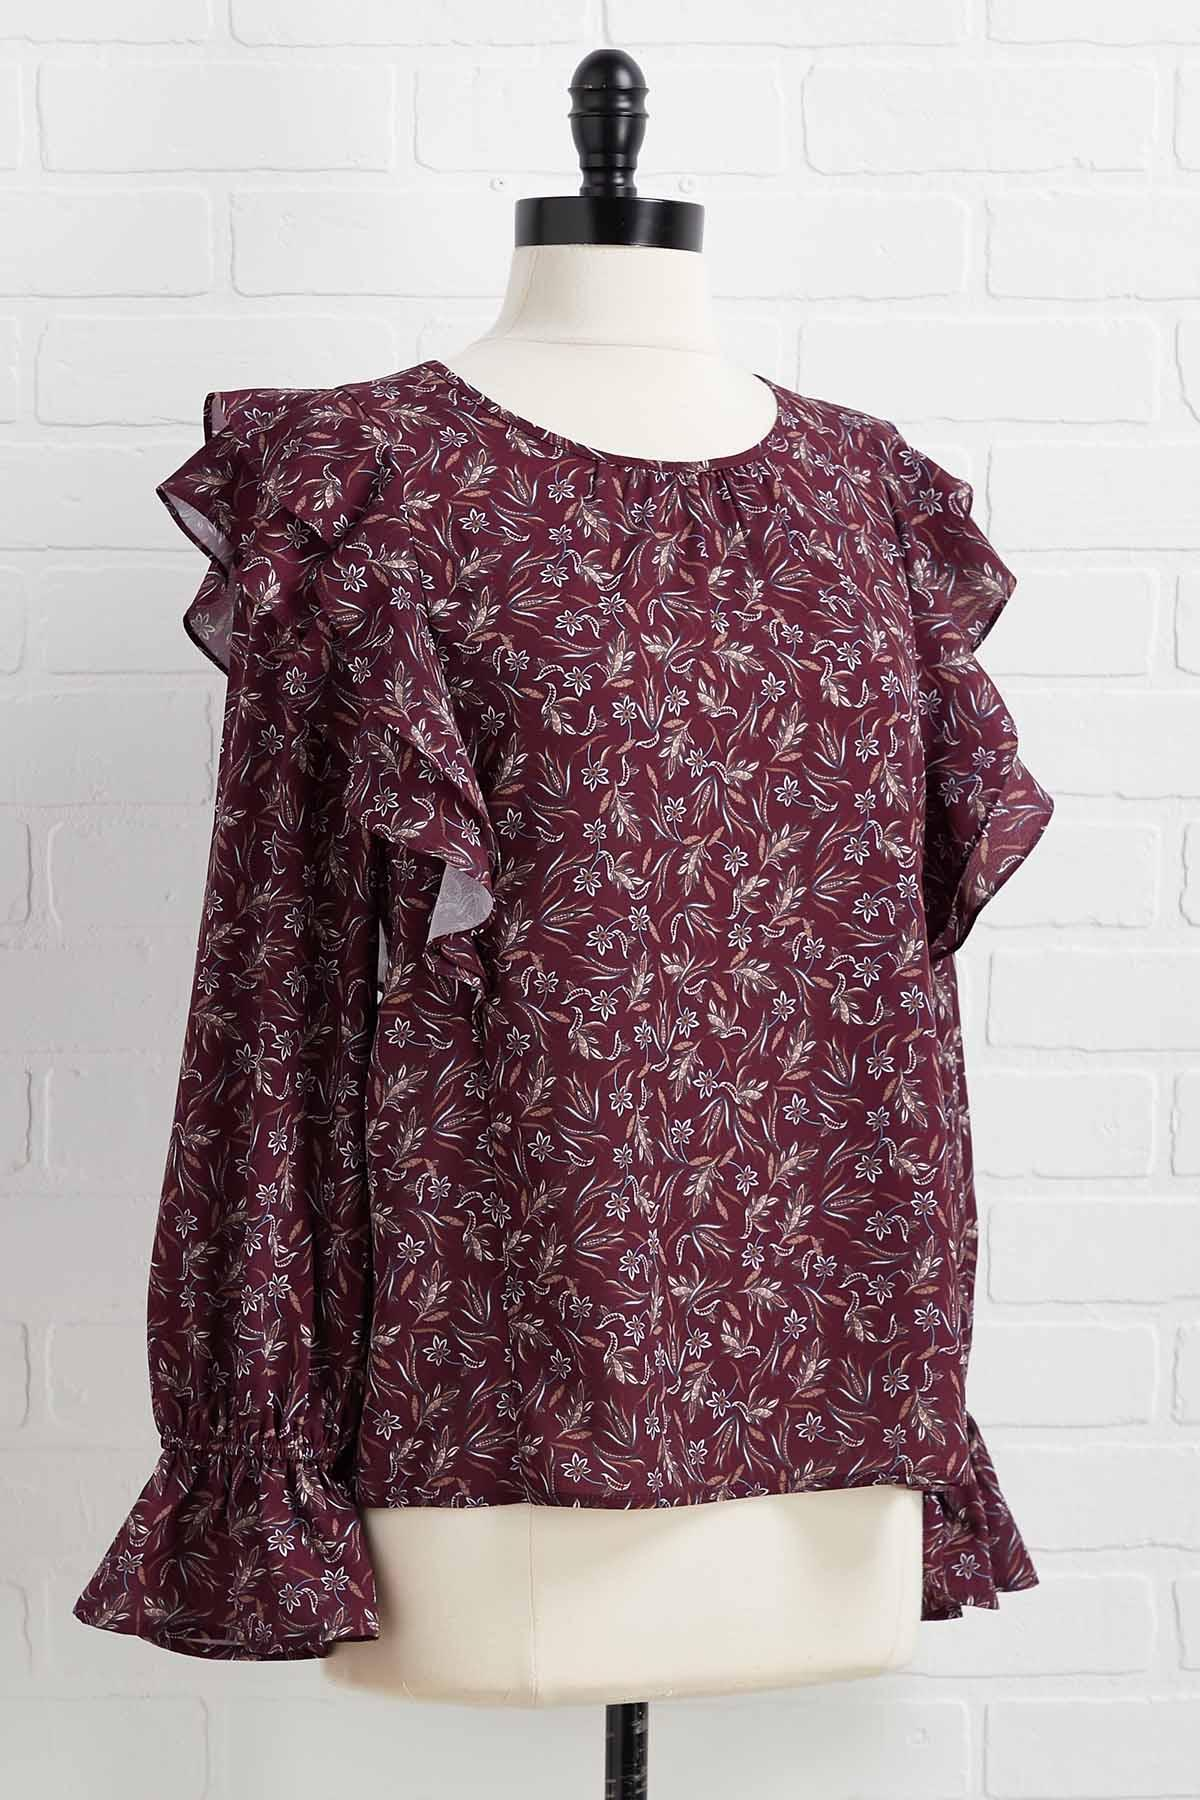 Winery Tour Top